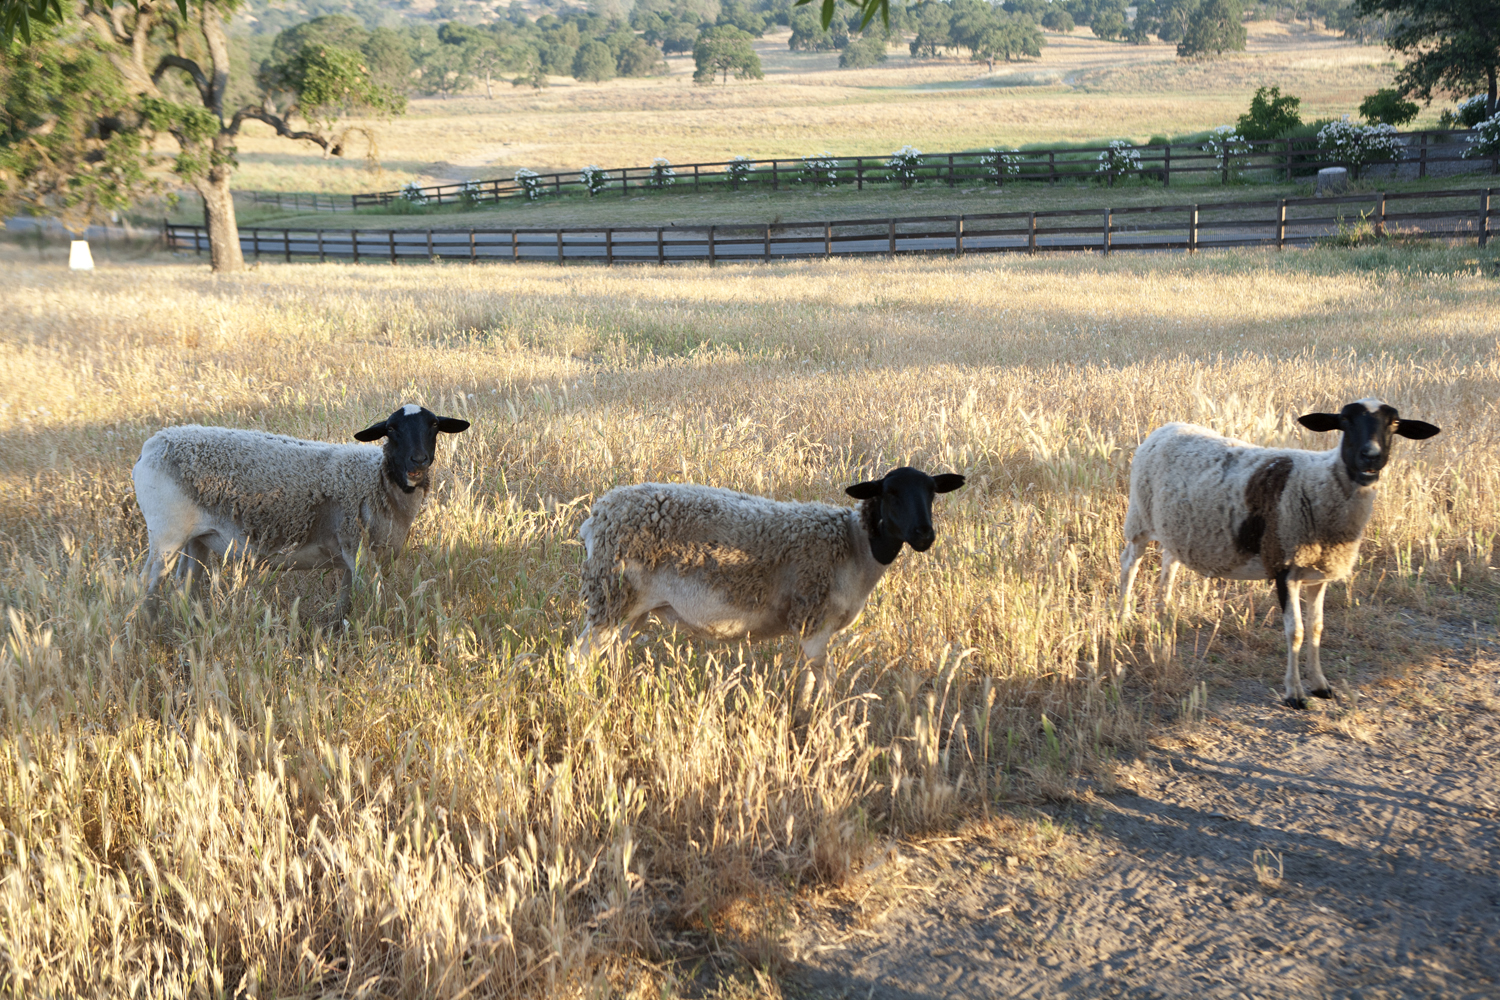 Our Philosophy: Sheep - Our Dorper sheep are easy to care for, fast-growing meat-producing sheep that forage on pasture on a rotational grazing system that helps maintain healthy systems not only for the animal but for the pastures.